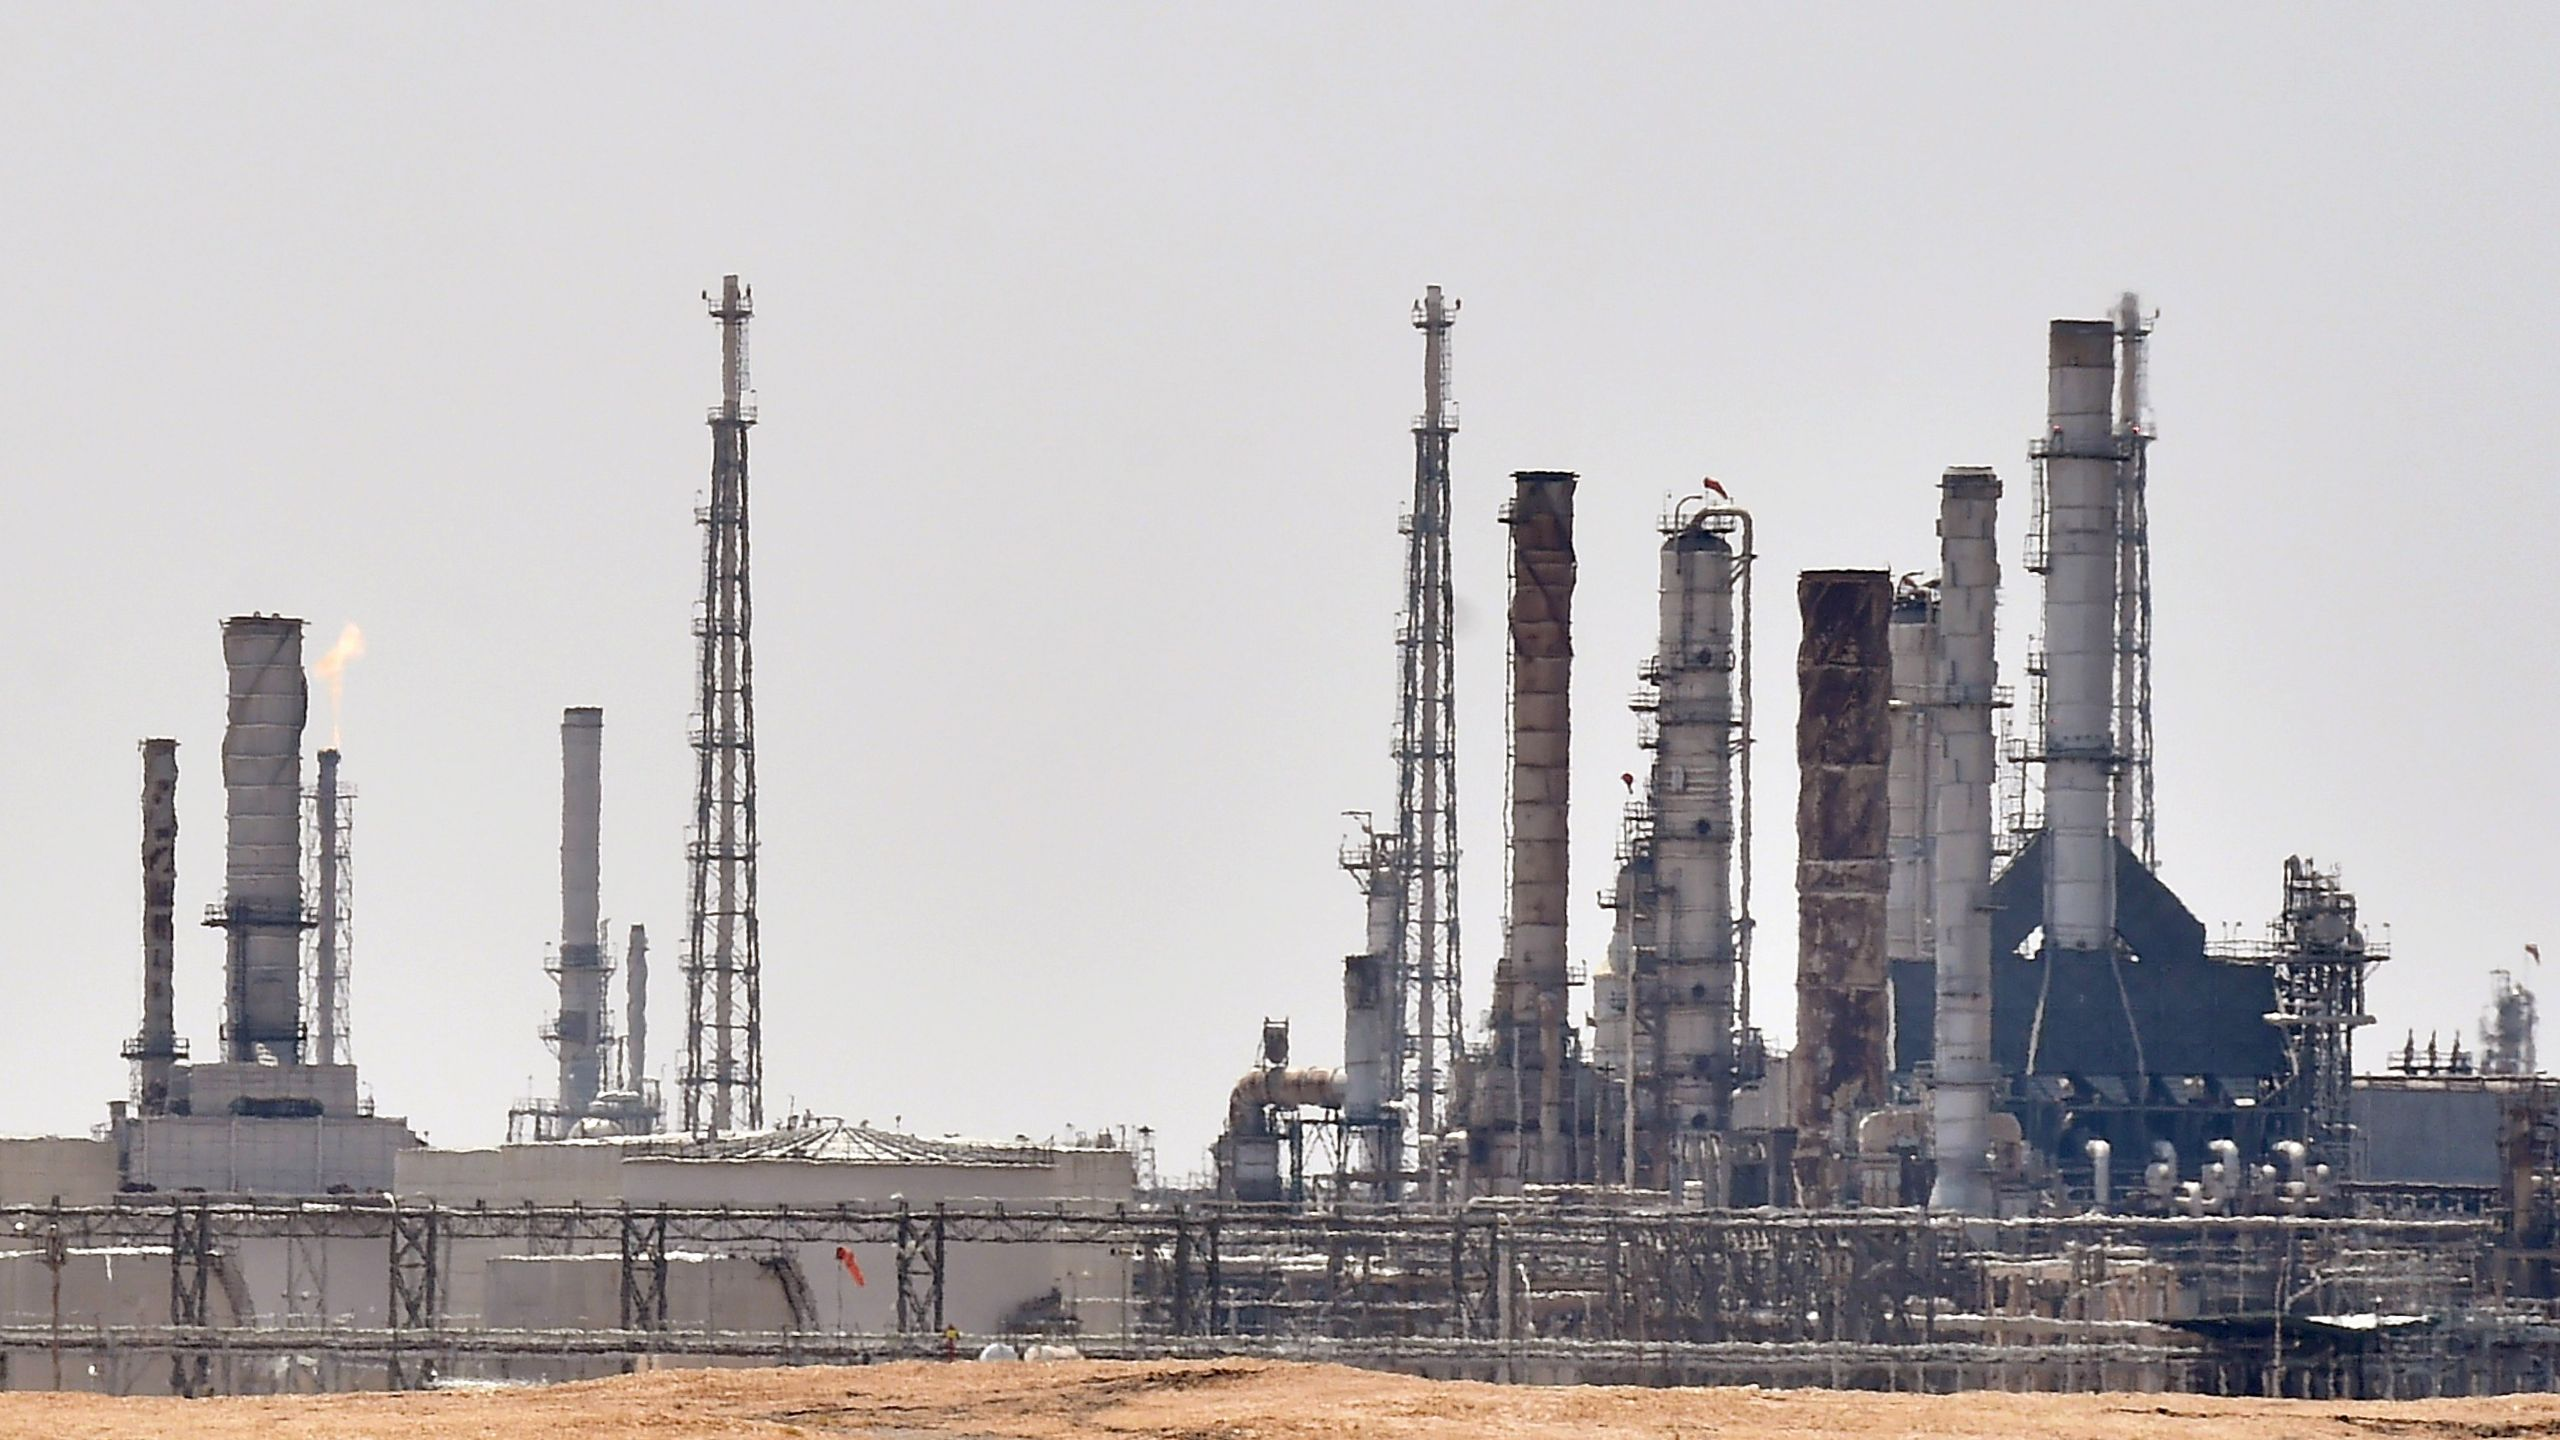 A picture taken on Sept. 15, 2019, shows an Aramco oil facility near al-Khurj area, just south of the Saudi capital Riyadh. (Credit: FAYEZ NURELDINE/AFP/Getty Images)